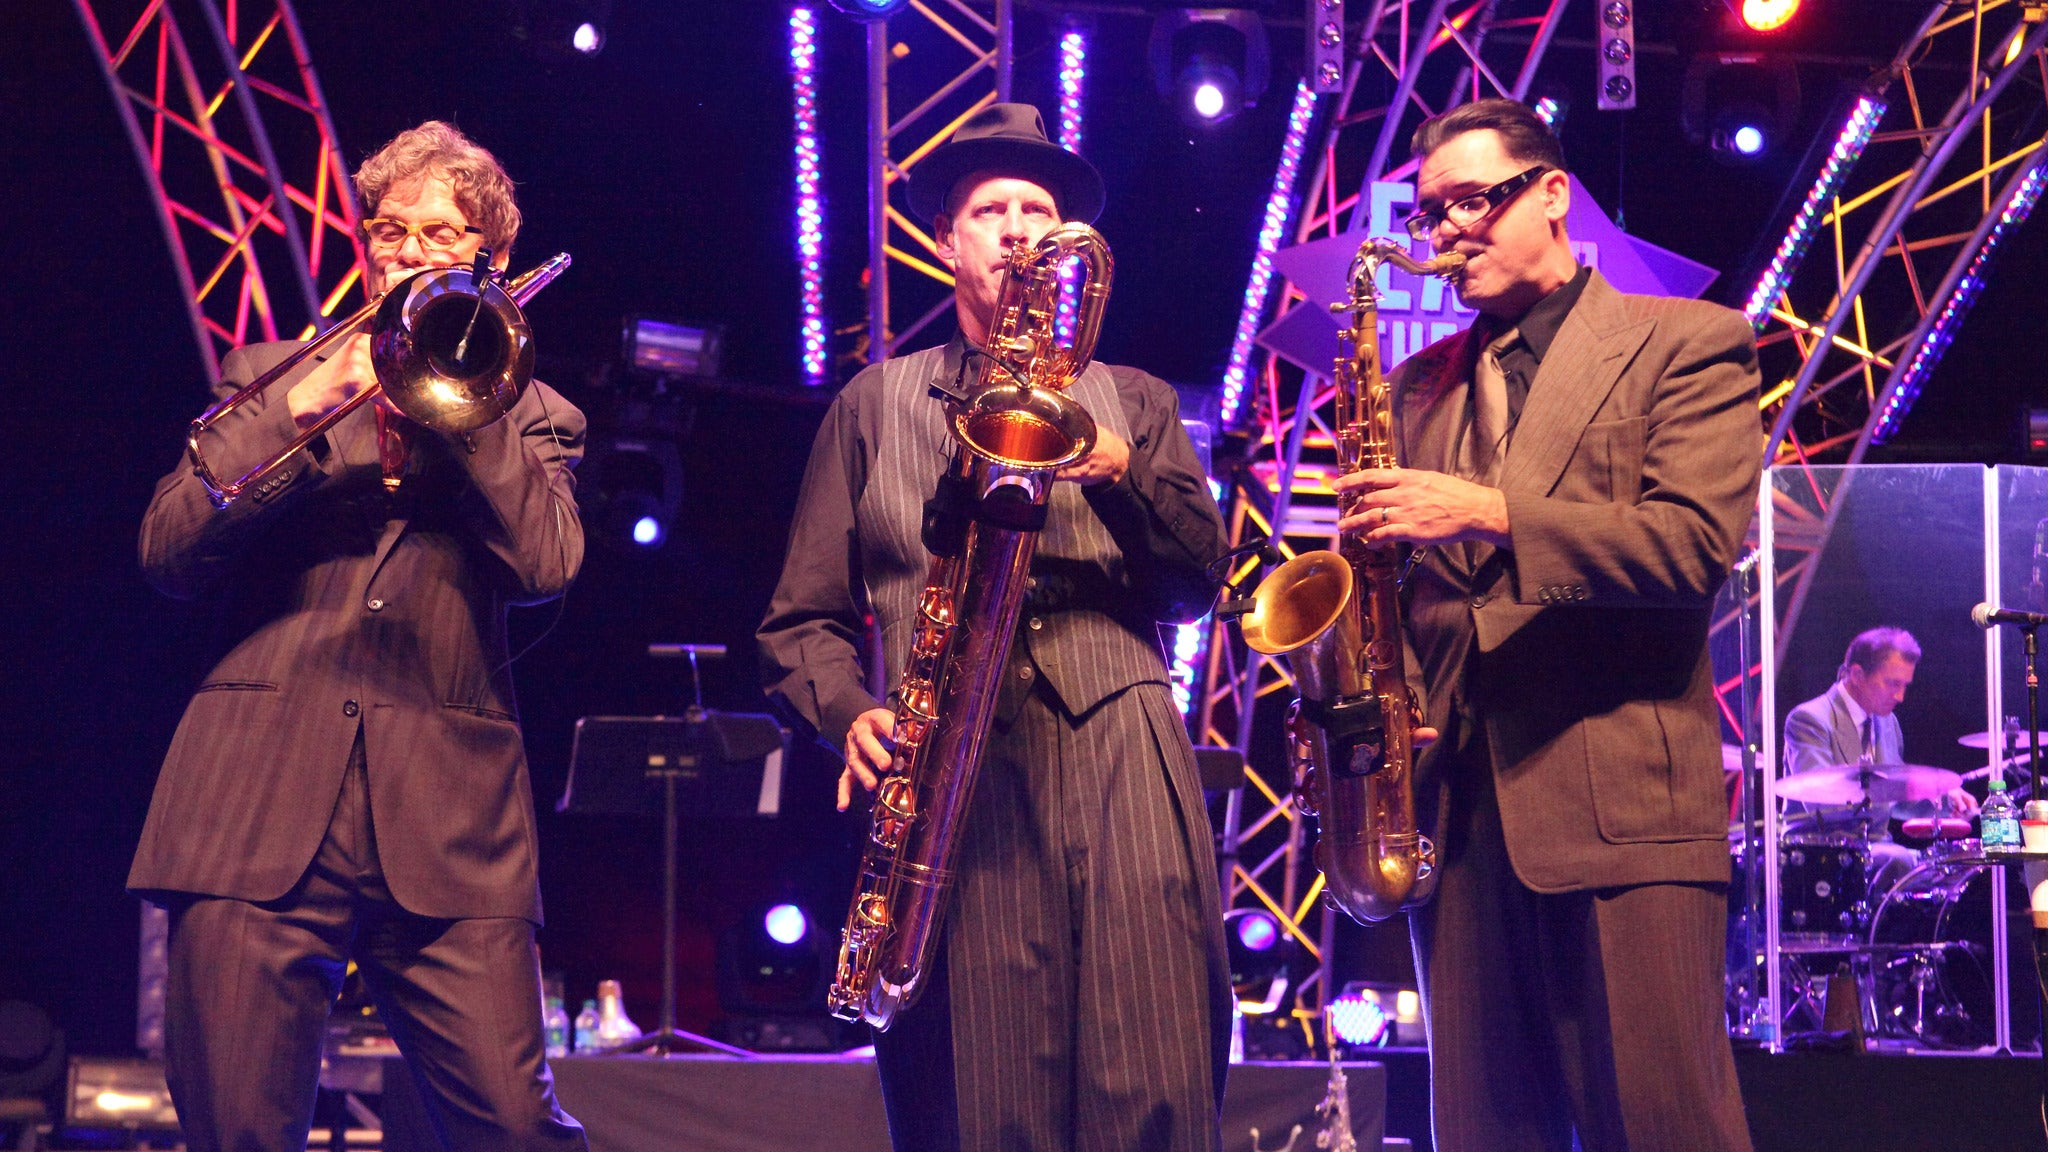 Big Bad Voodoo Daddy at The Coach House